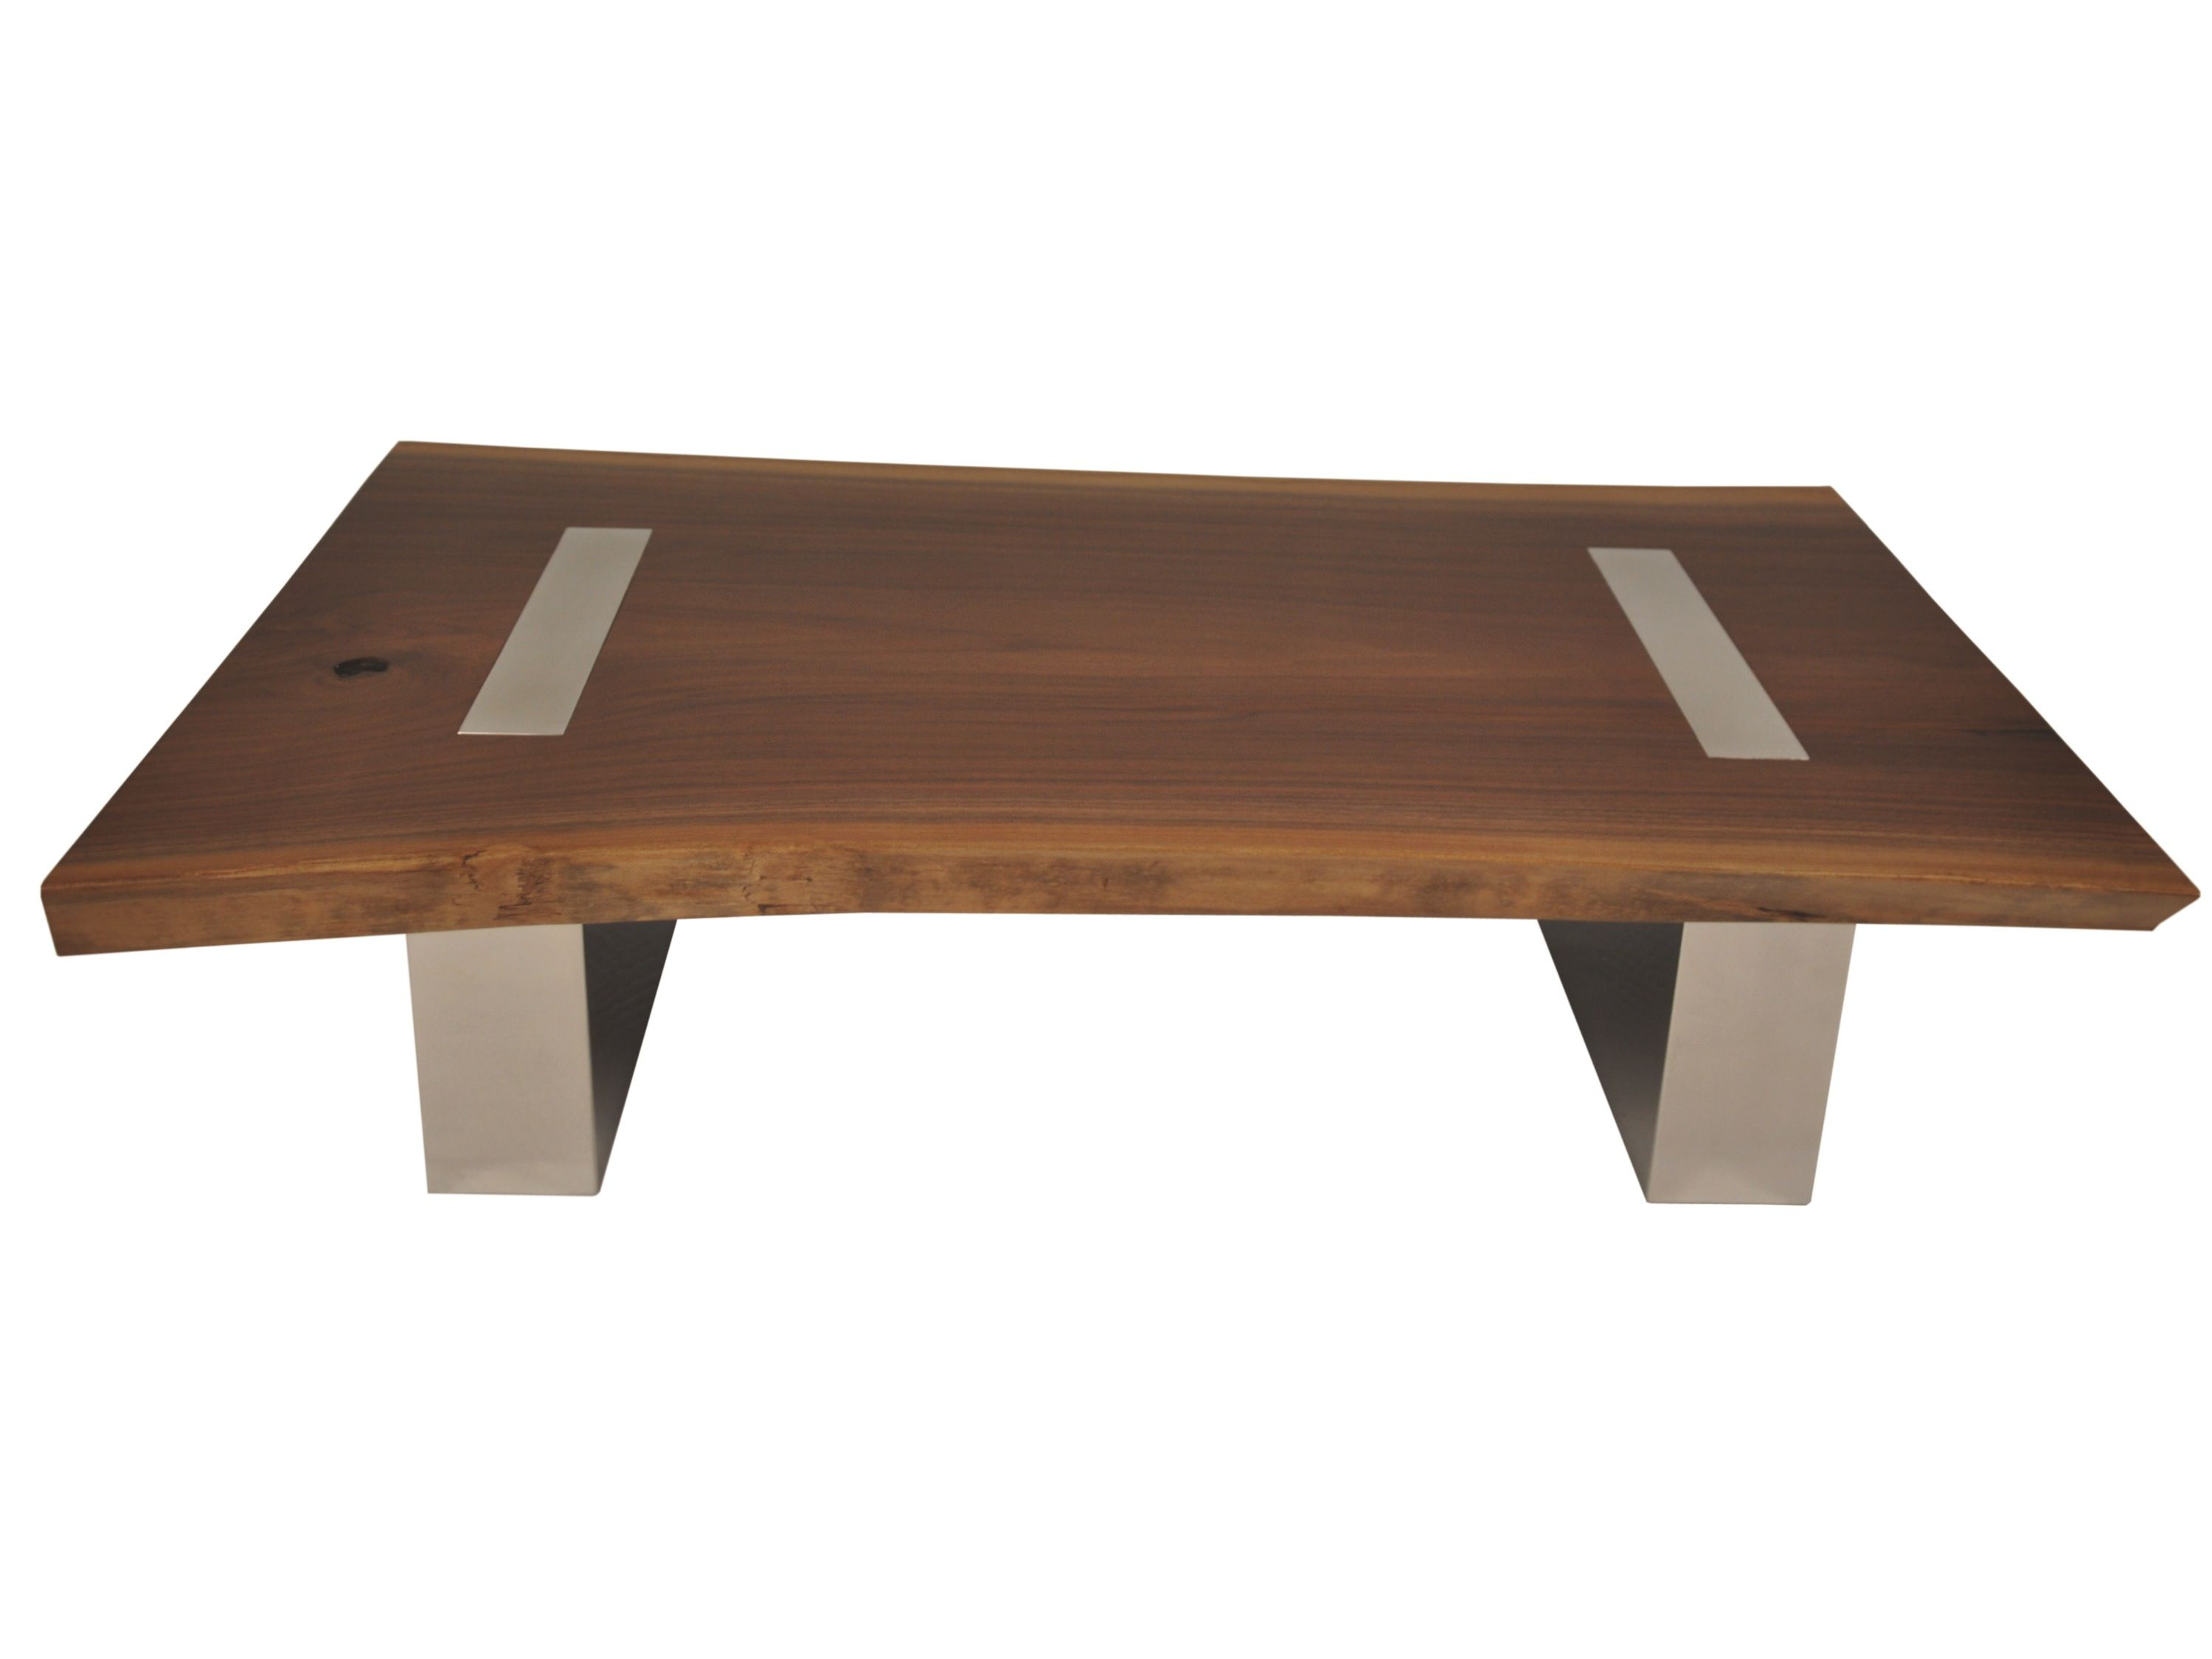 Solid Walnut Accent Table Top In Reclaimed Wood And Base Polished Stainless Steel Or